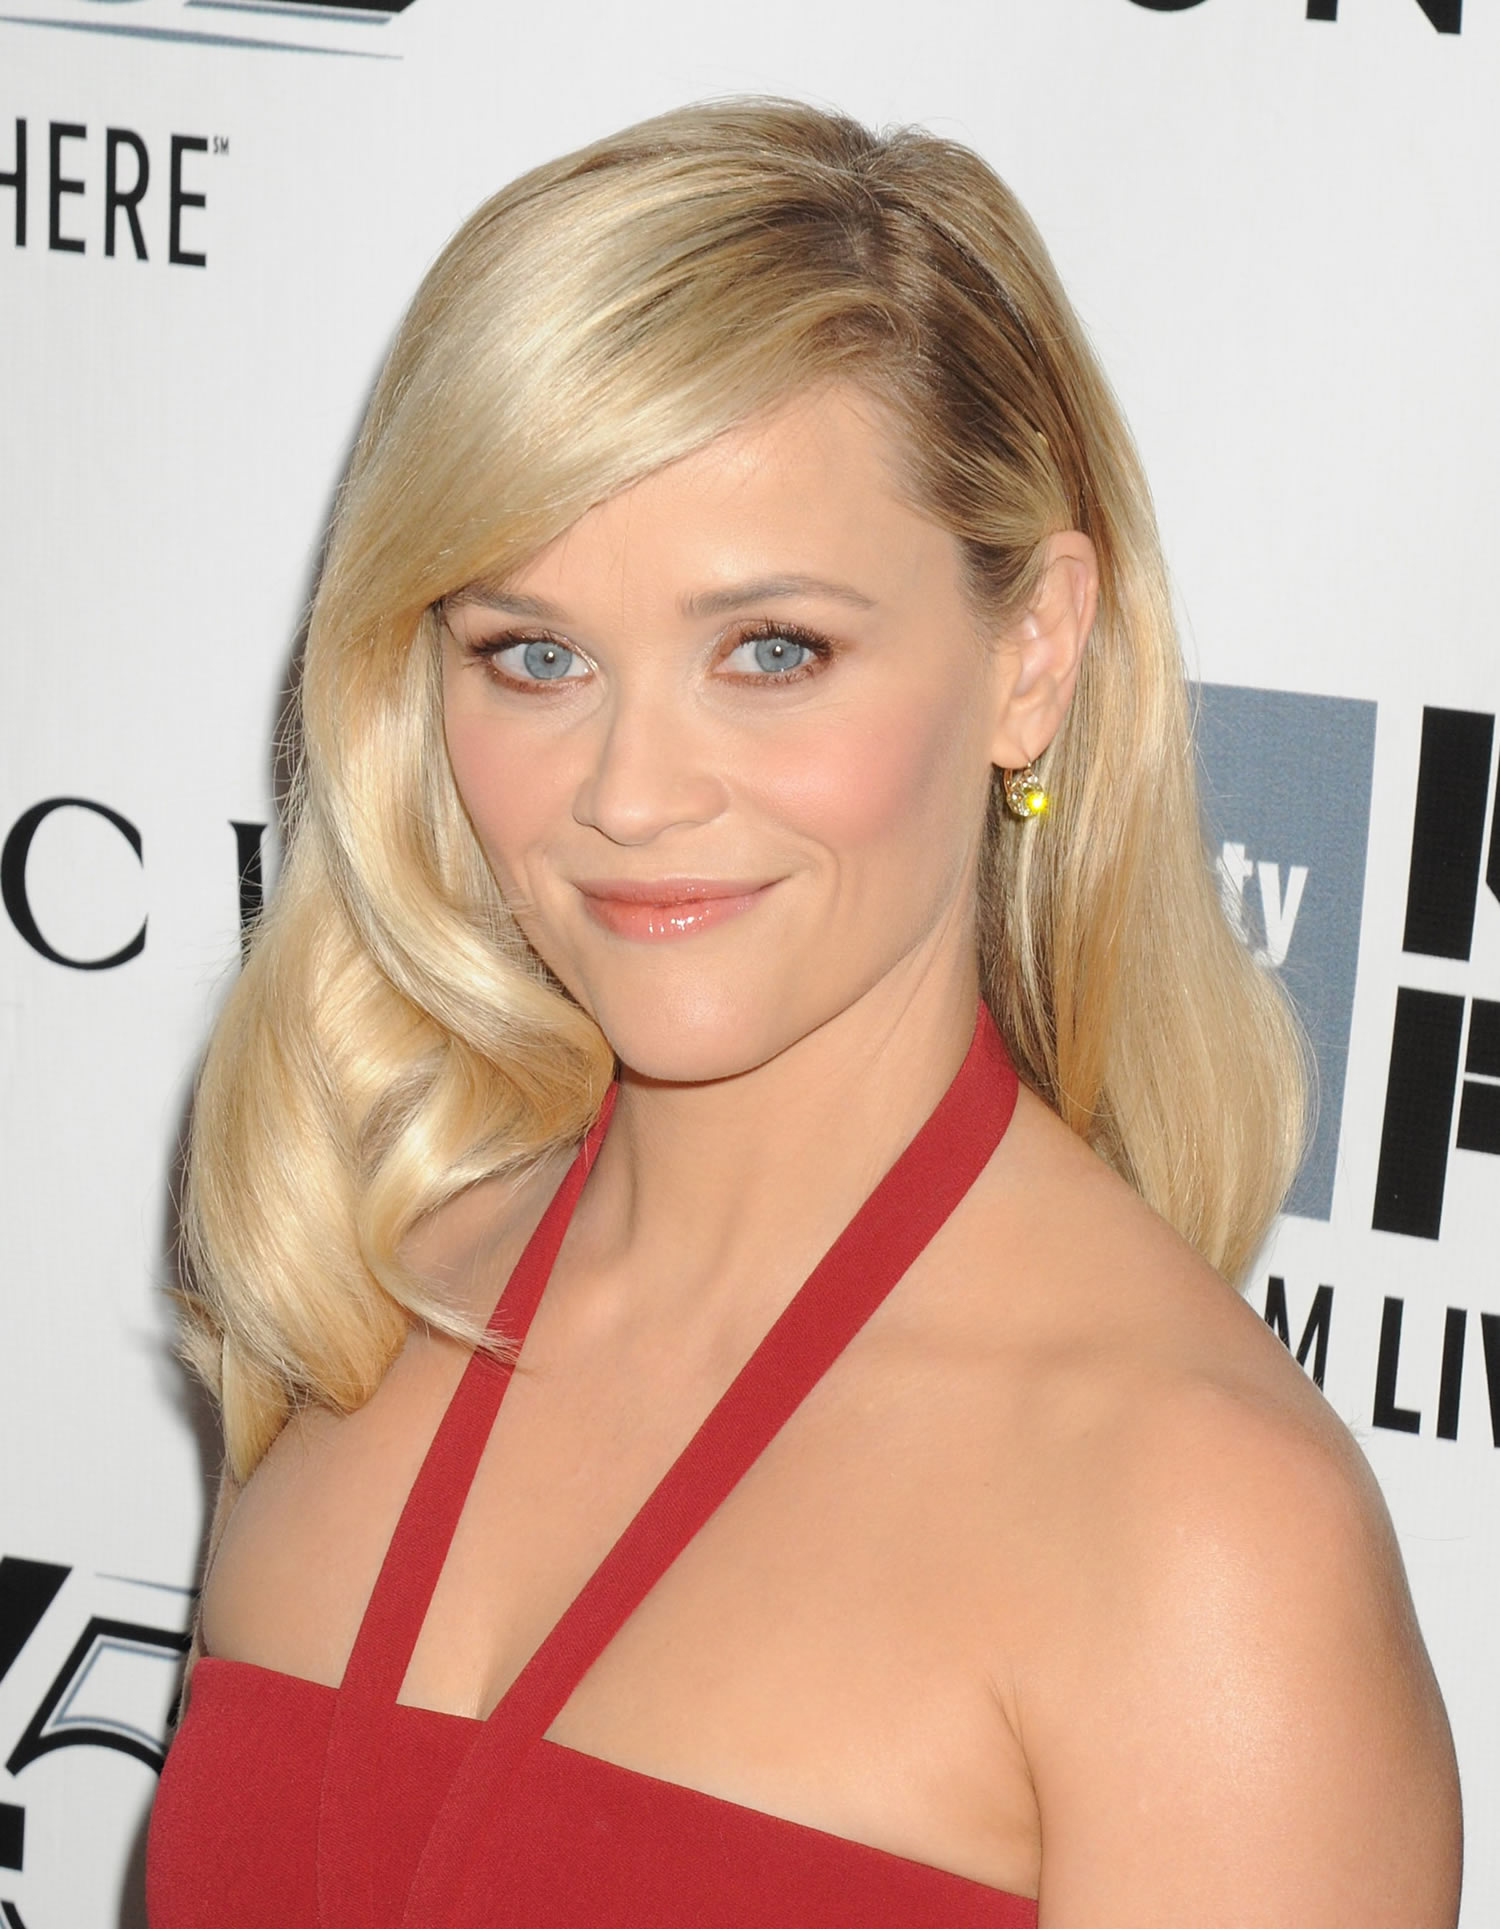 reese girls On the 22nd of march, reese witherspoon celebrates her birthday.